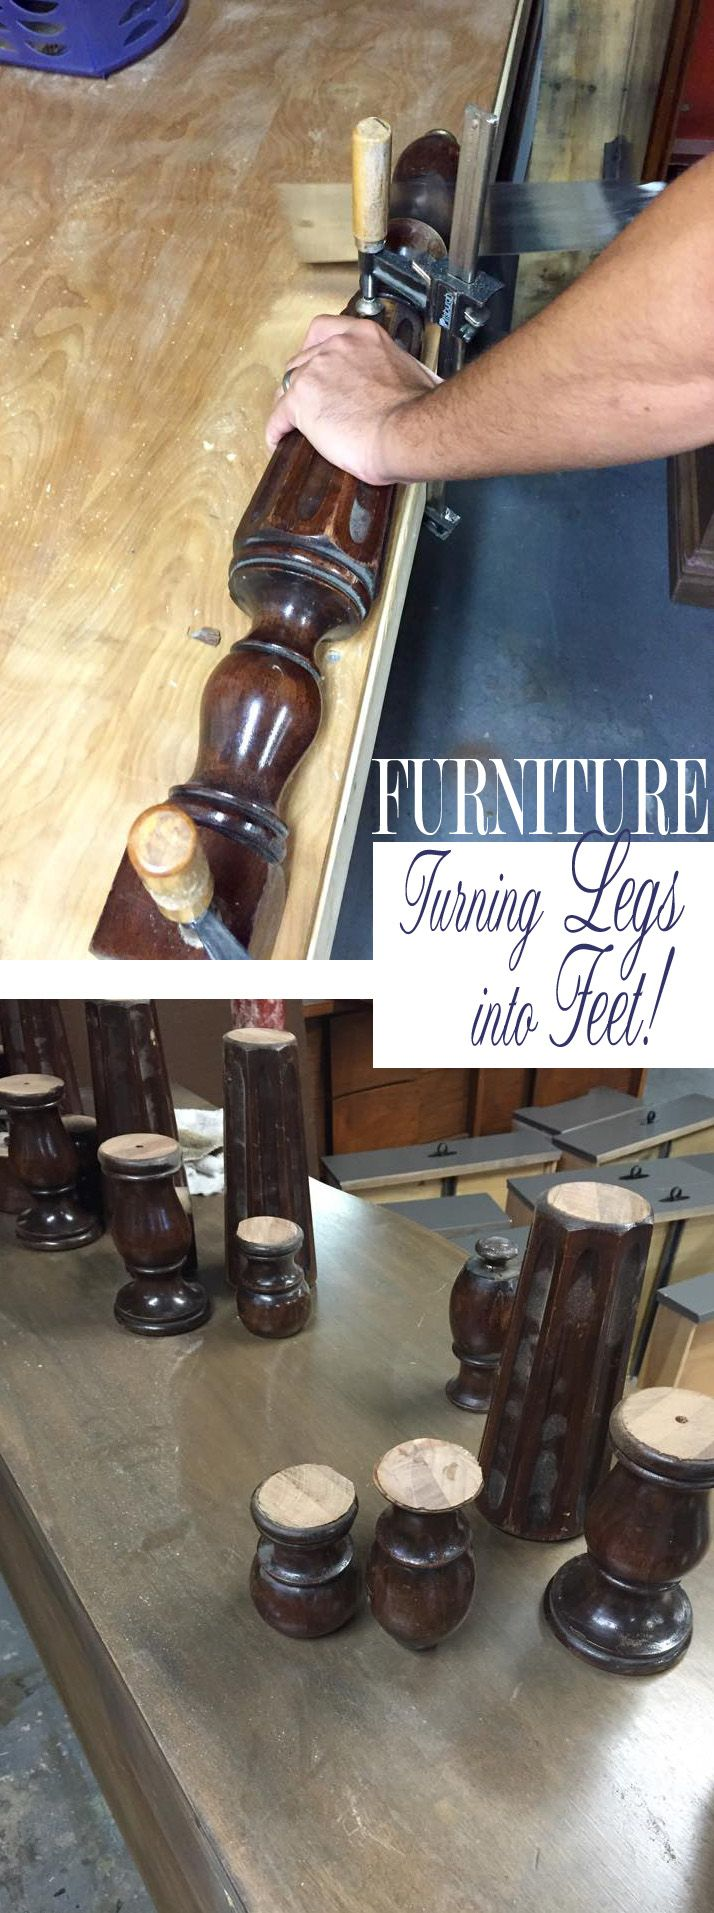 I LOVE This Furniture Up Cycling Idea! Use Old Furniture Legs To Make New  Furniture Feet! | QTT Featuring Simple Redesign